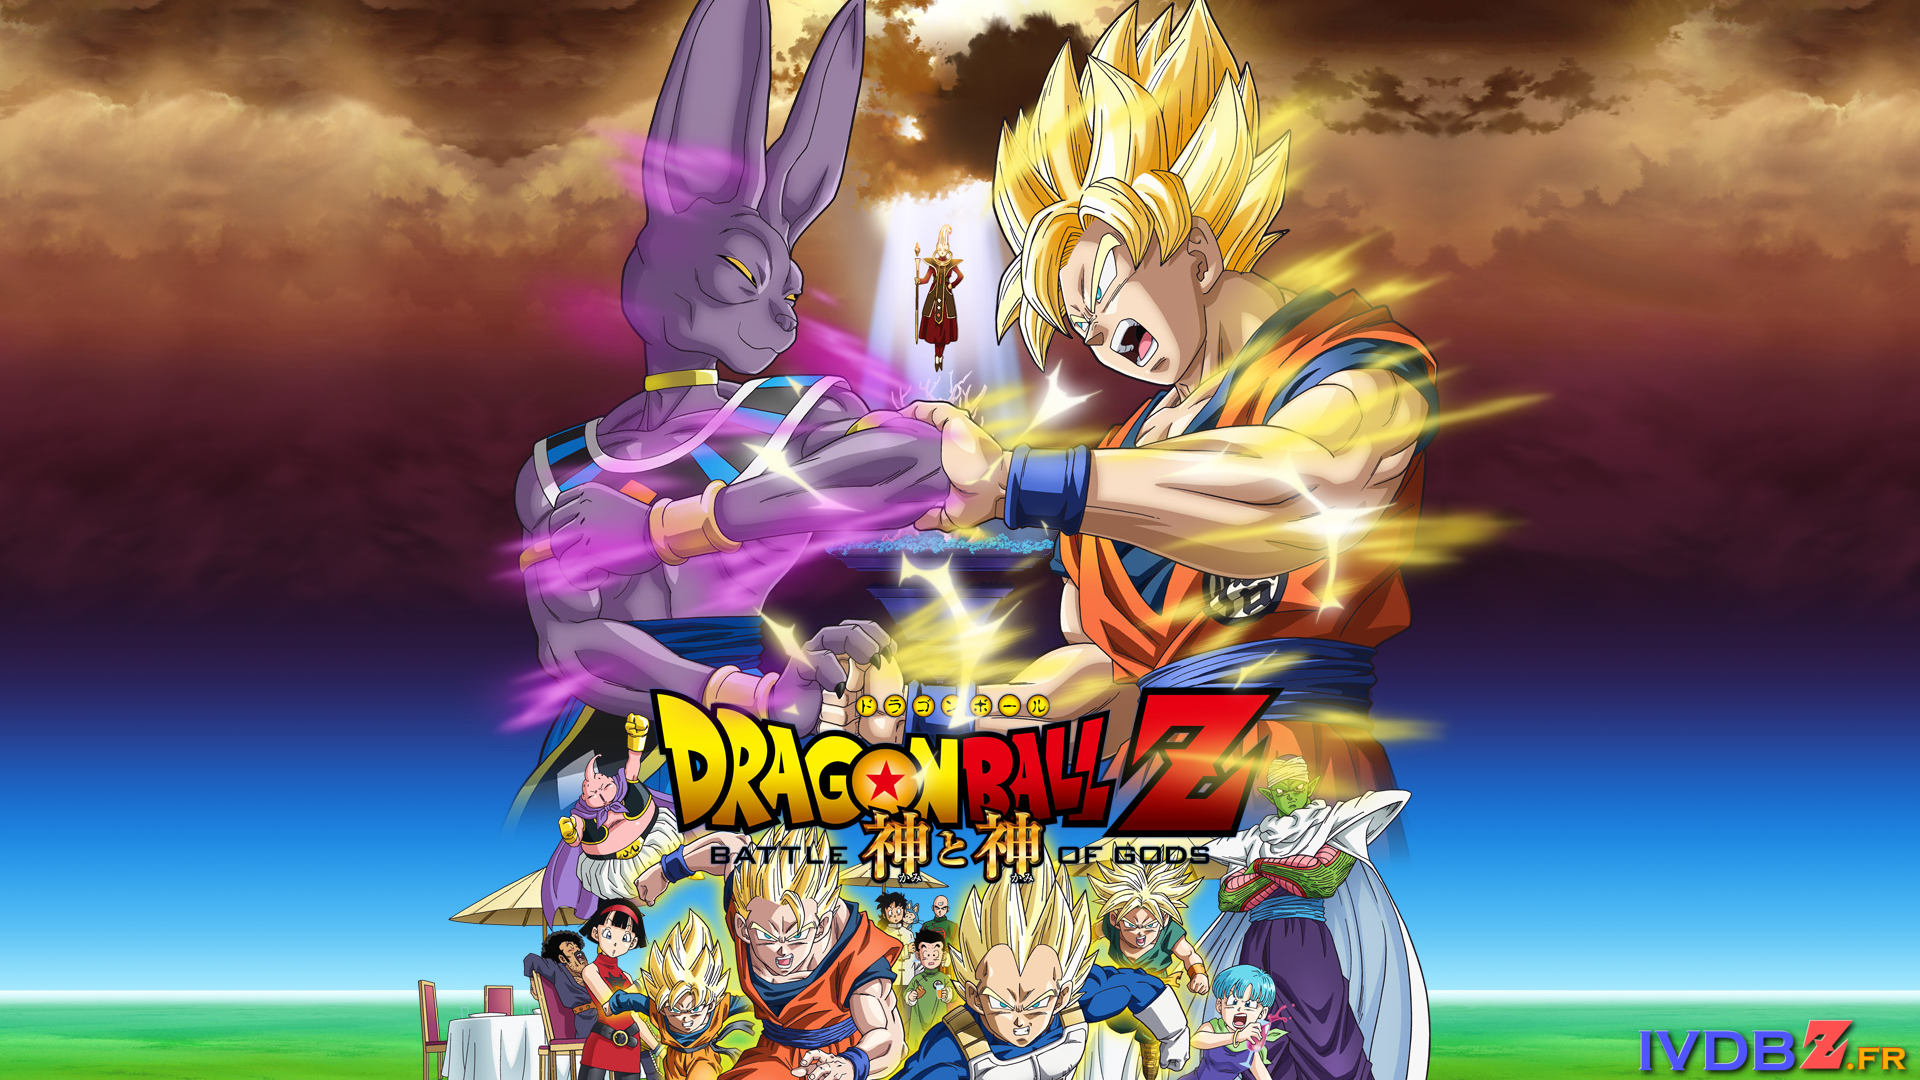 4 dragon ball z battle of gods fonds d 39 cran hd arri re for Fond ecran dbz